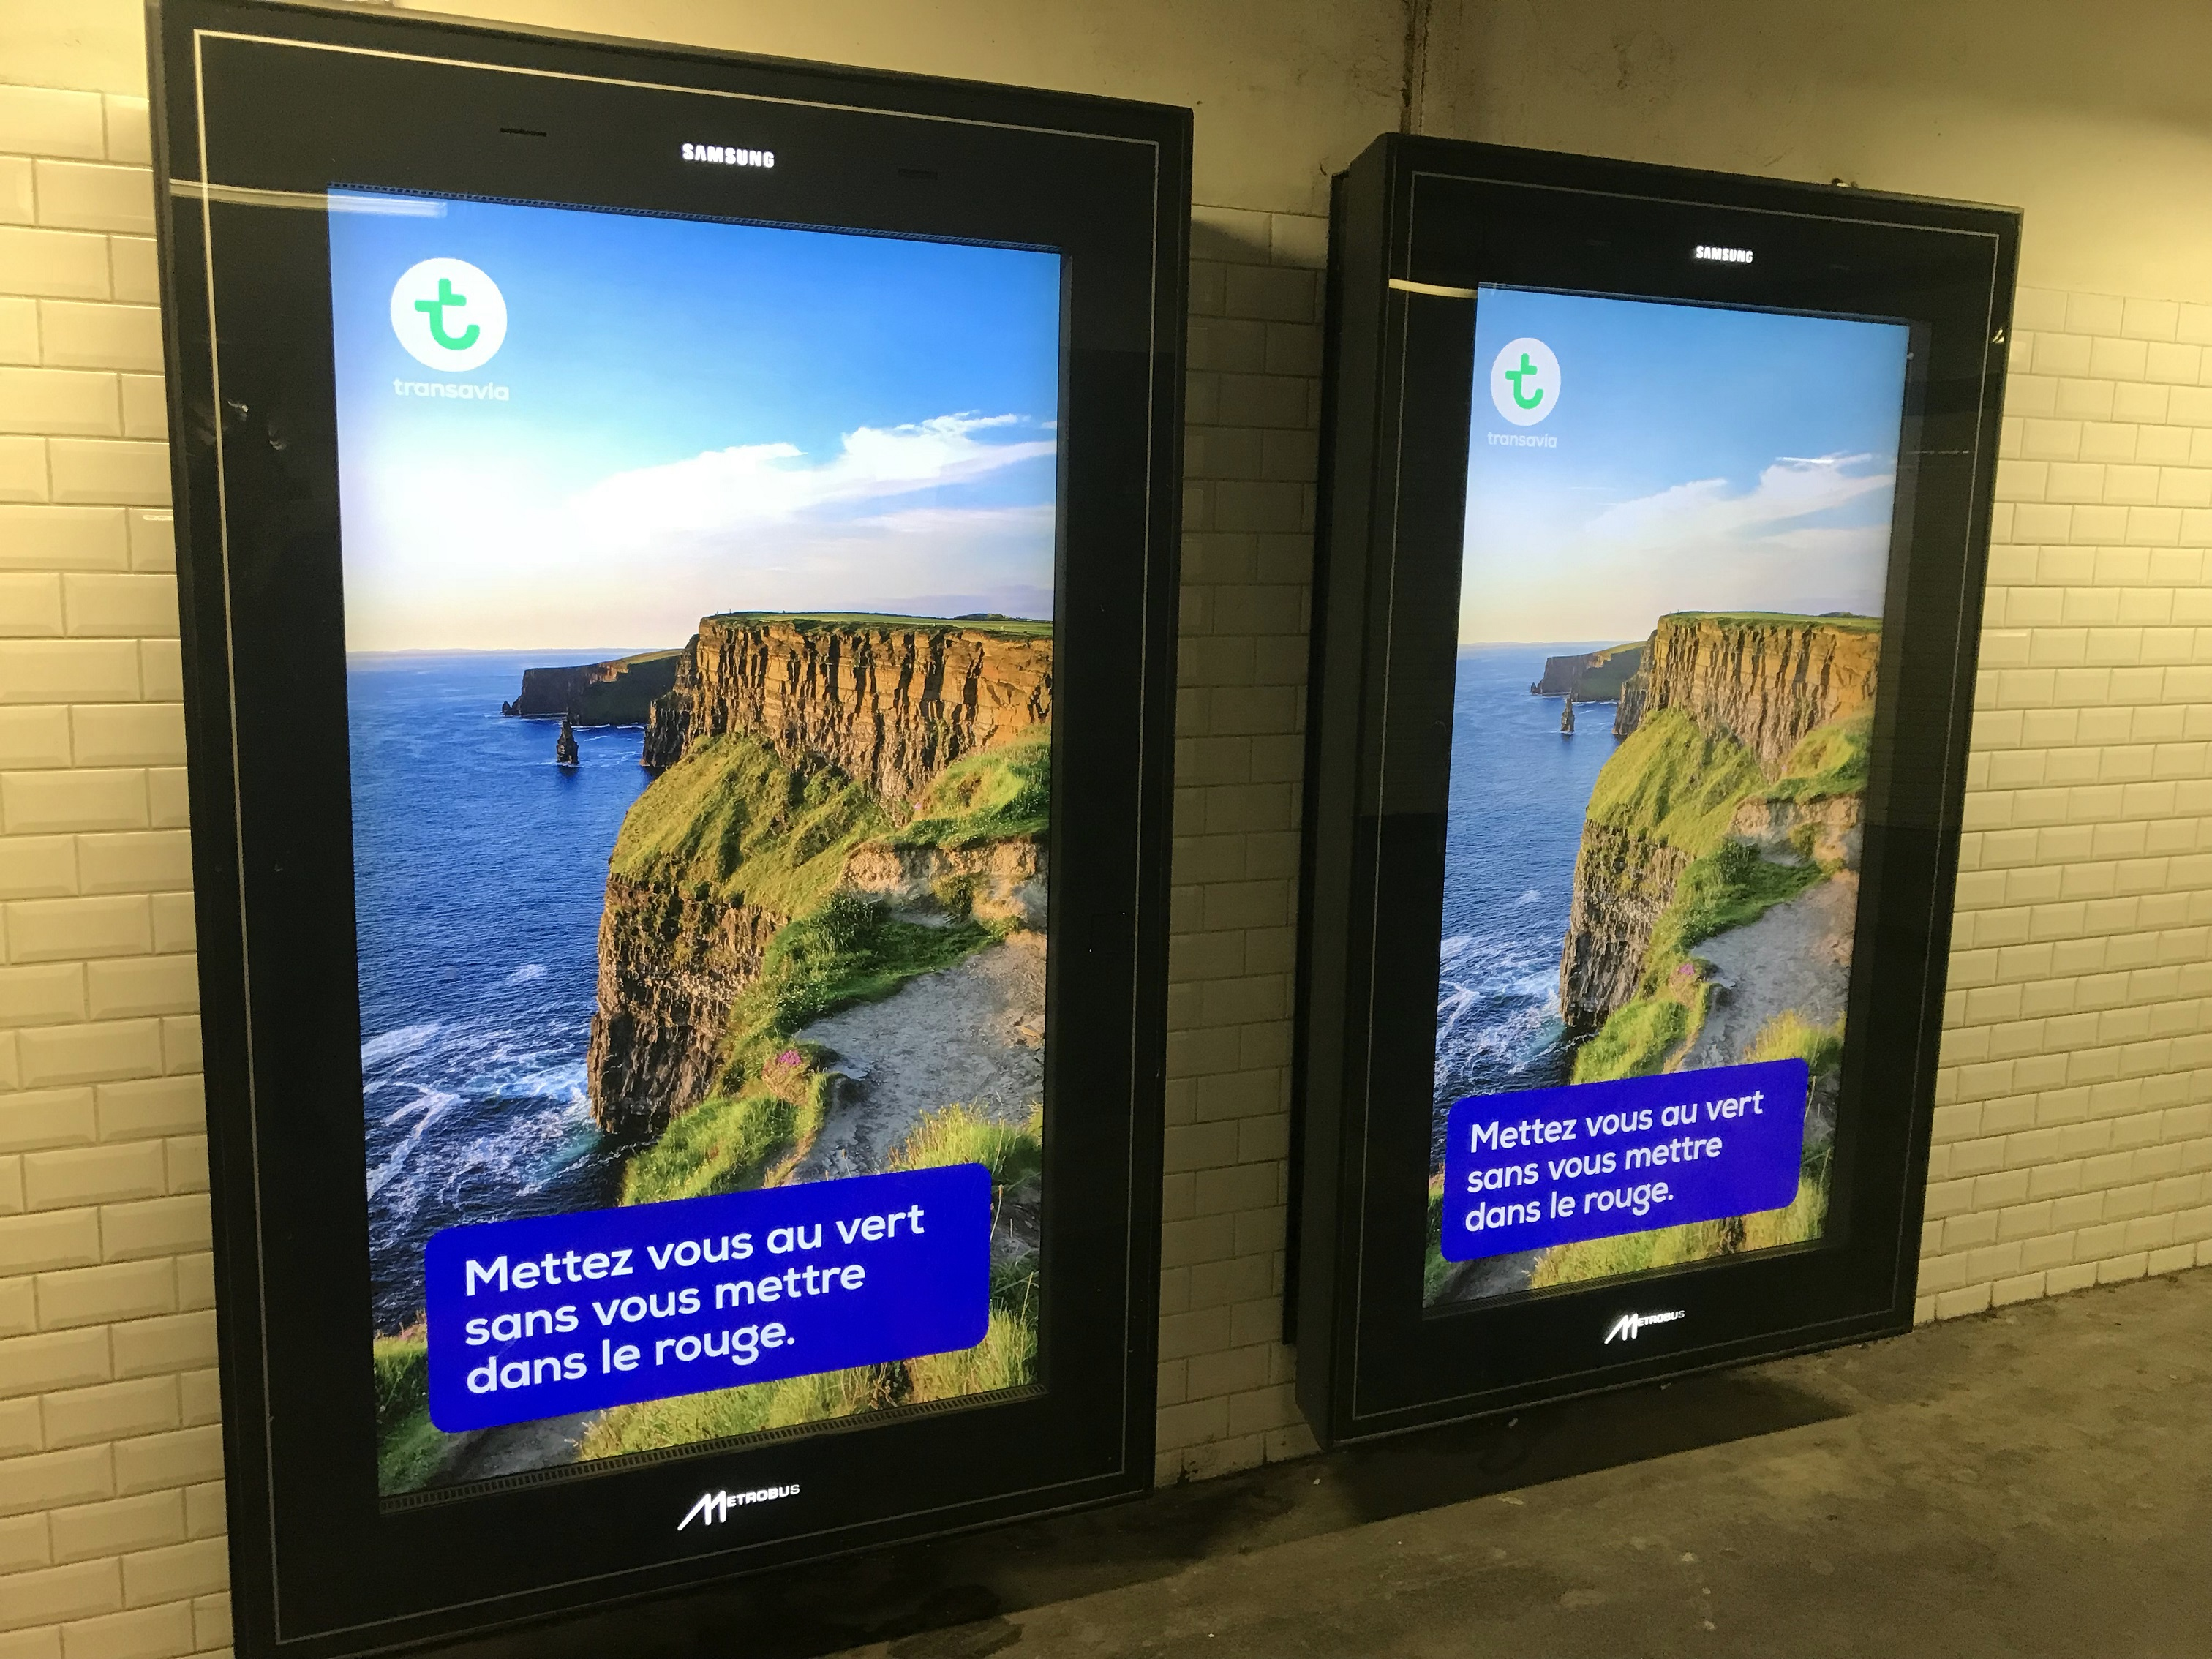 April 2018 – Millions of French commuters are seeing ads for Ireland as they pass through the busy metro stations of Paris this month. Tourism Ireland in Paris has teamed up with French airline Transavia (the low cost airline owned by the Air France-KLM group) to highlight holidays and short breaks in Ireland for 2018. The campaign with Transavia includes ads on almost 500 screens in metro stations around the French capital, highlighting great value fares to Dublin from Paris, which are grabbing the attention of commuters with a beautiful image of the Cliffs of Moher – and reminding them why they should put Ireland on their holiday wish-list for 2018.  VISUAL SHOWS: an ad running in Paris metro stations, highlighting great value fare to Ireland. Further media information - Sinead Grace, Tourism Ireland 087-685 9027